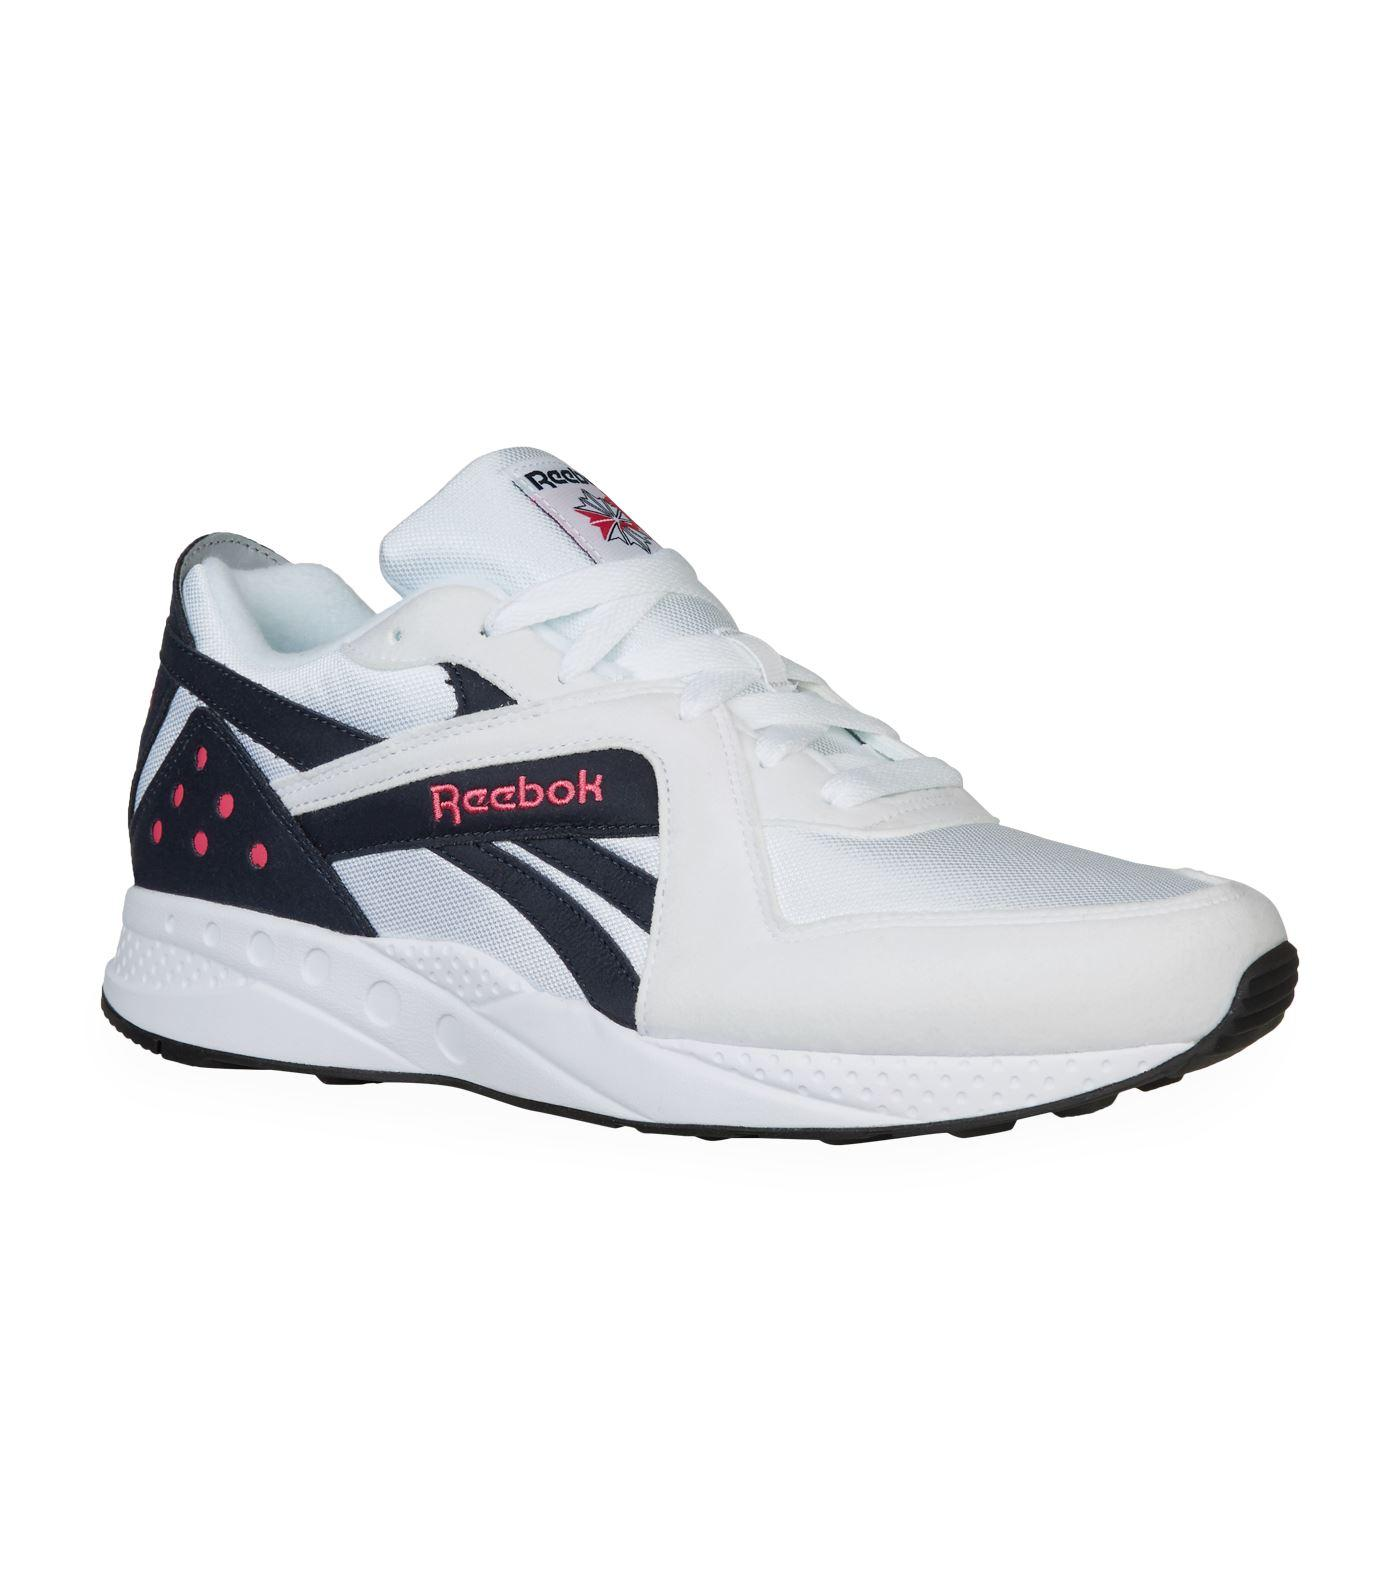 Reebok Pyro Sneakers in Blue for Men - Lyst c016486cf